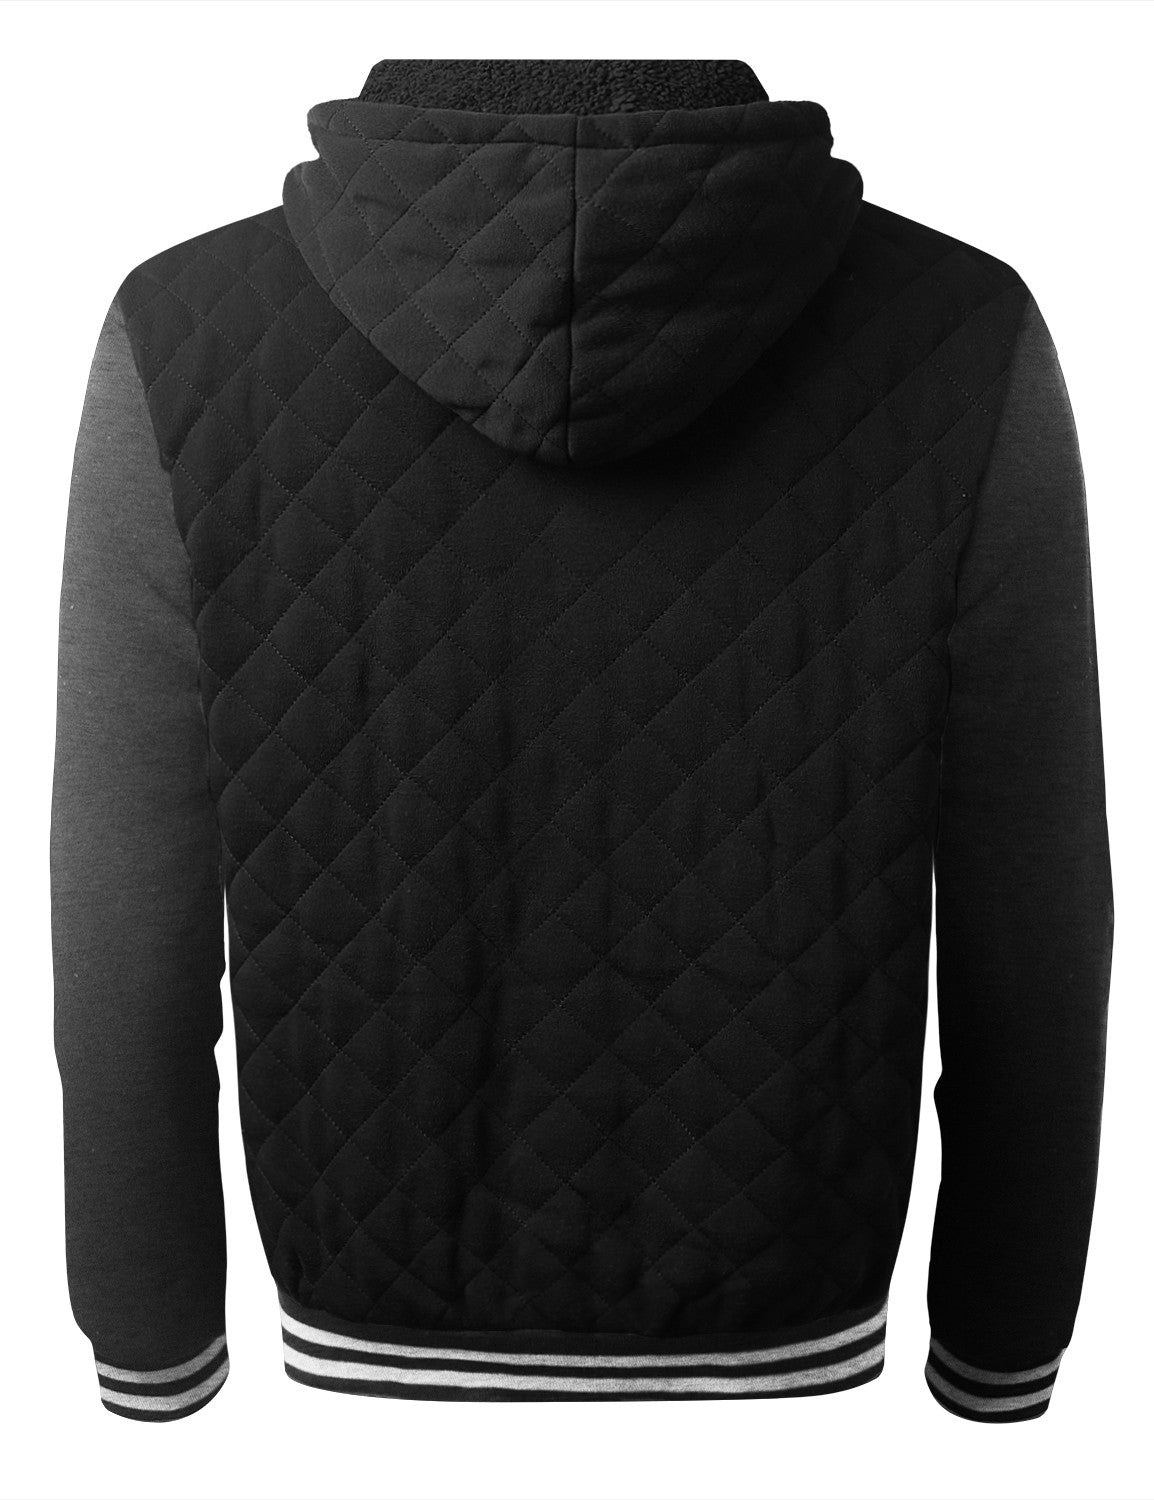 BLACKHCHARCOAL Quilted Baseball Hoodie Jacket - URBANCREWS